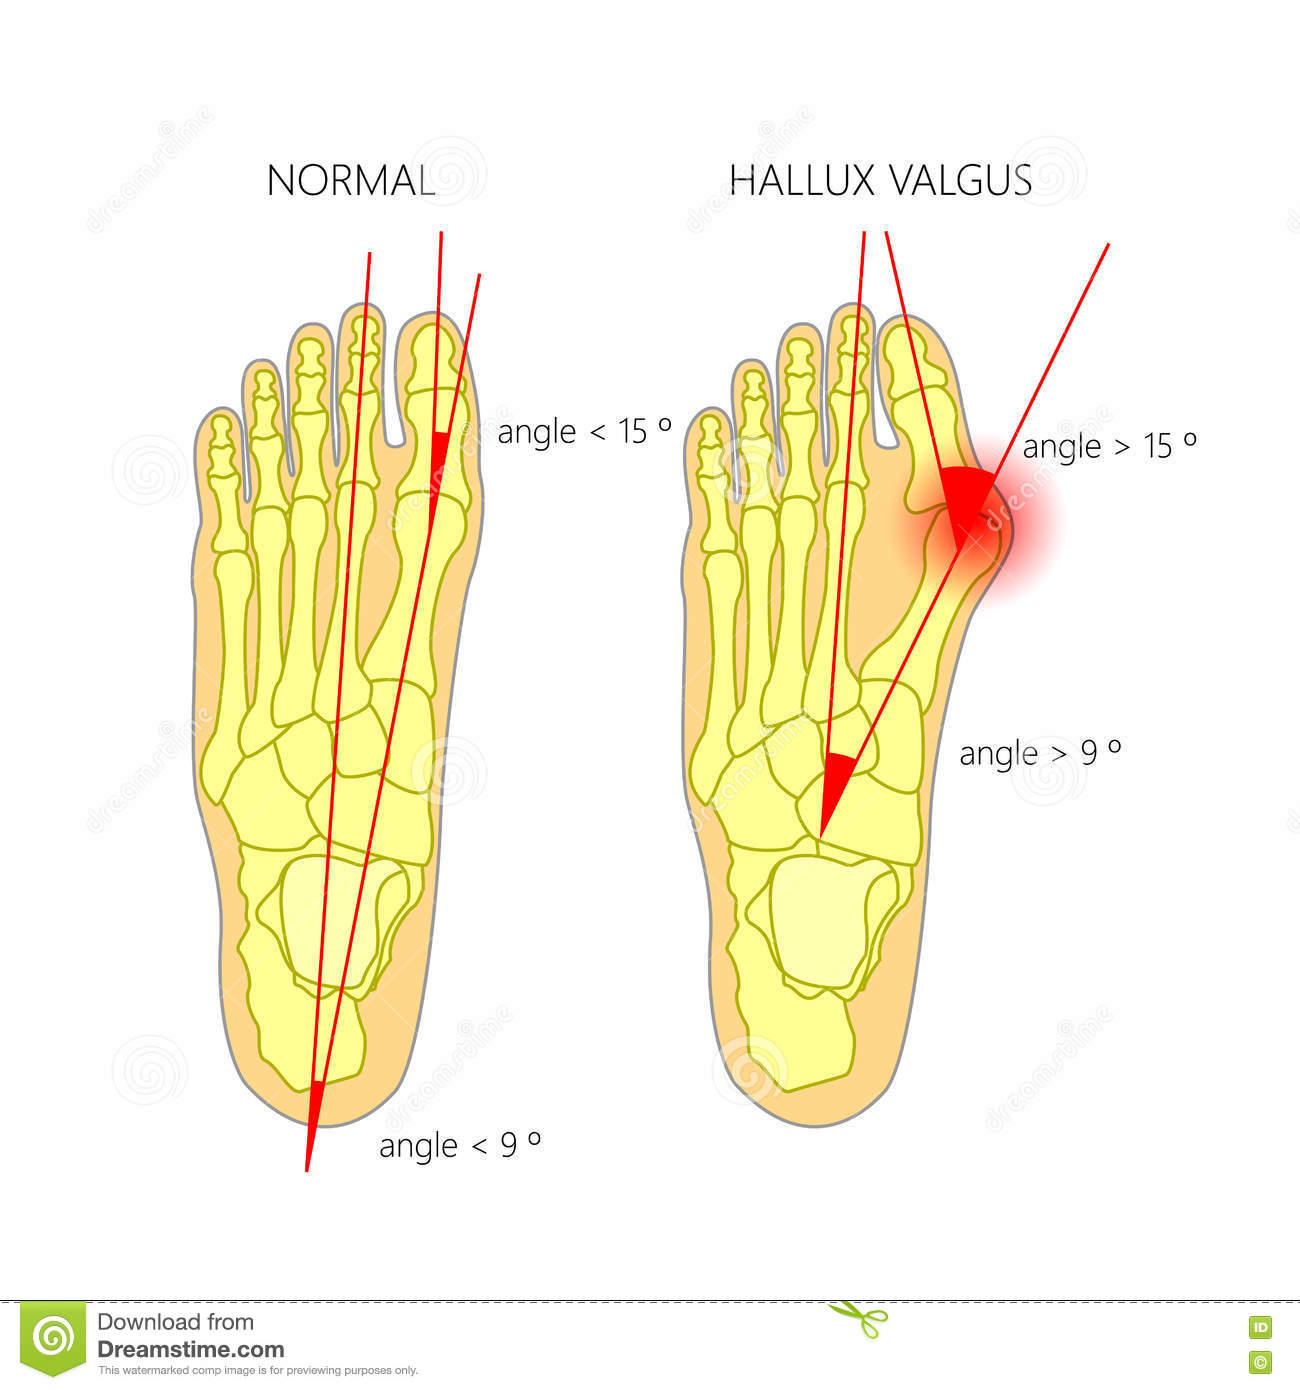 normal-foot-valgus-deviation-first-toe-i